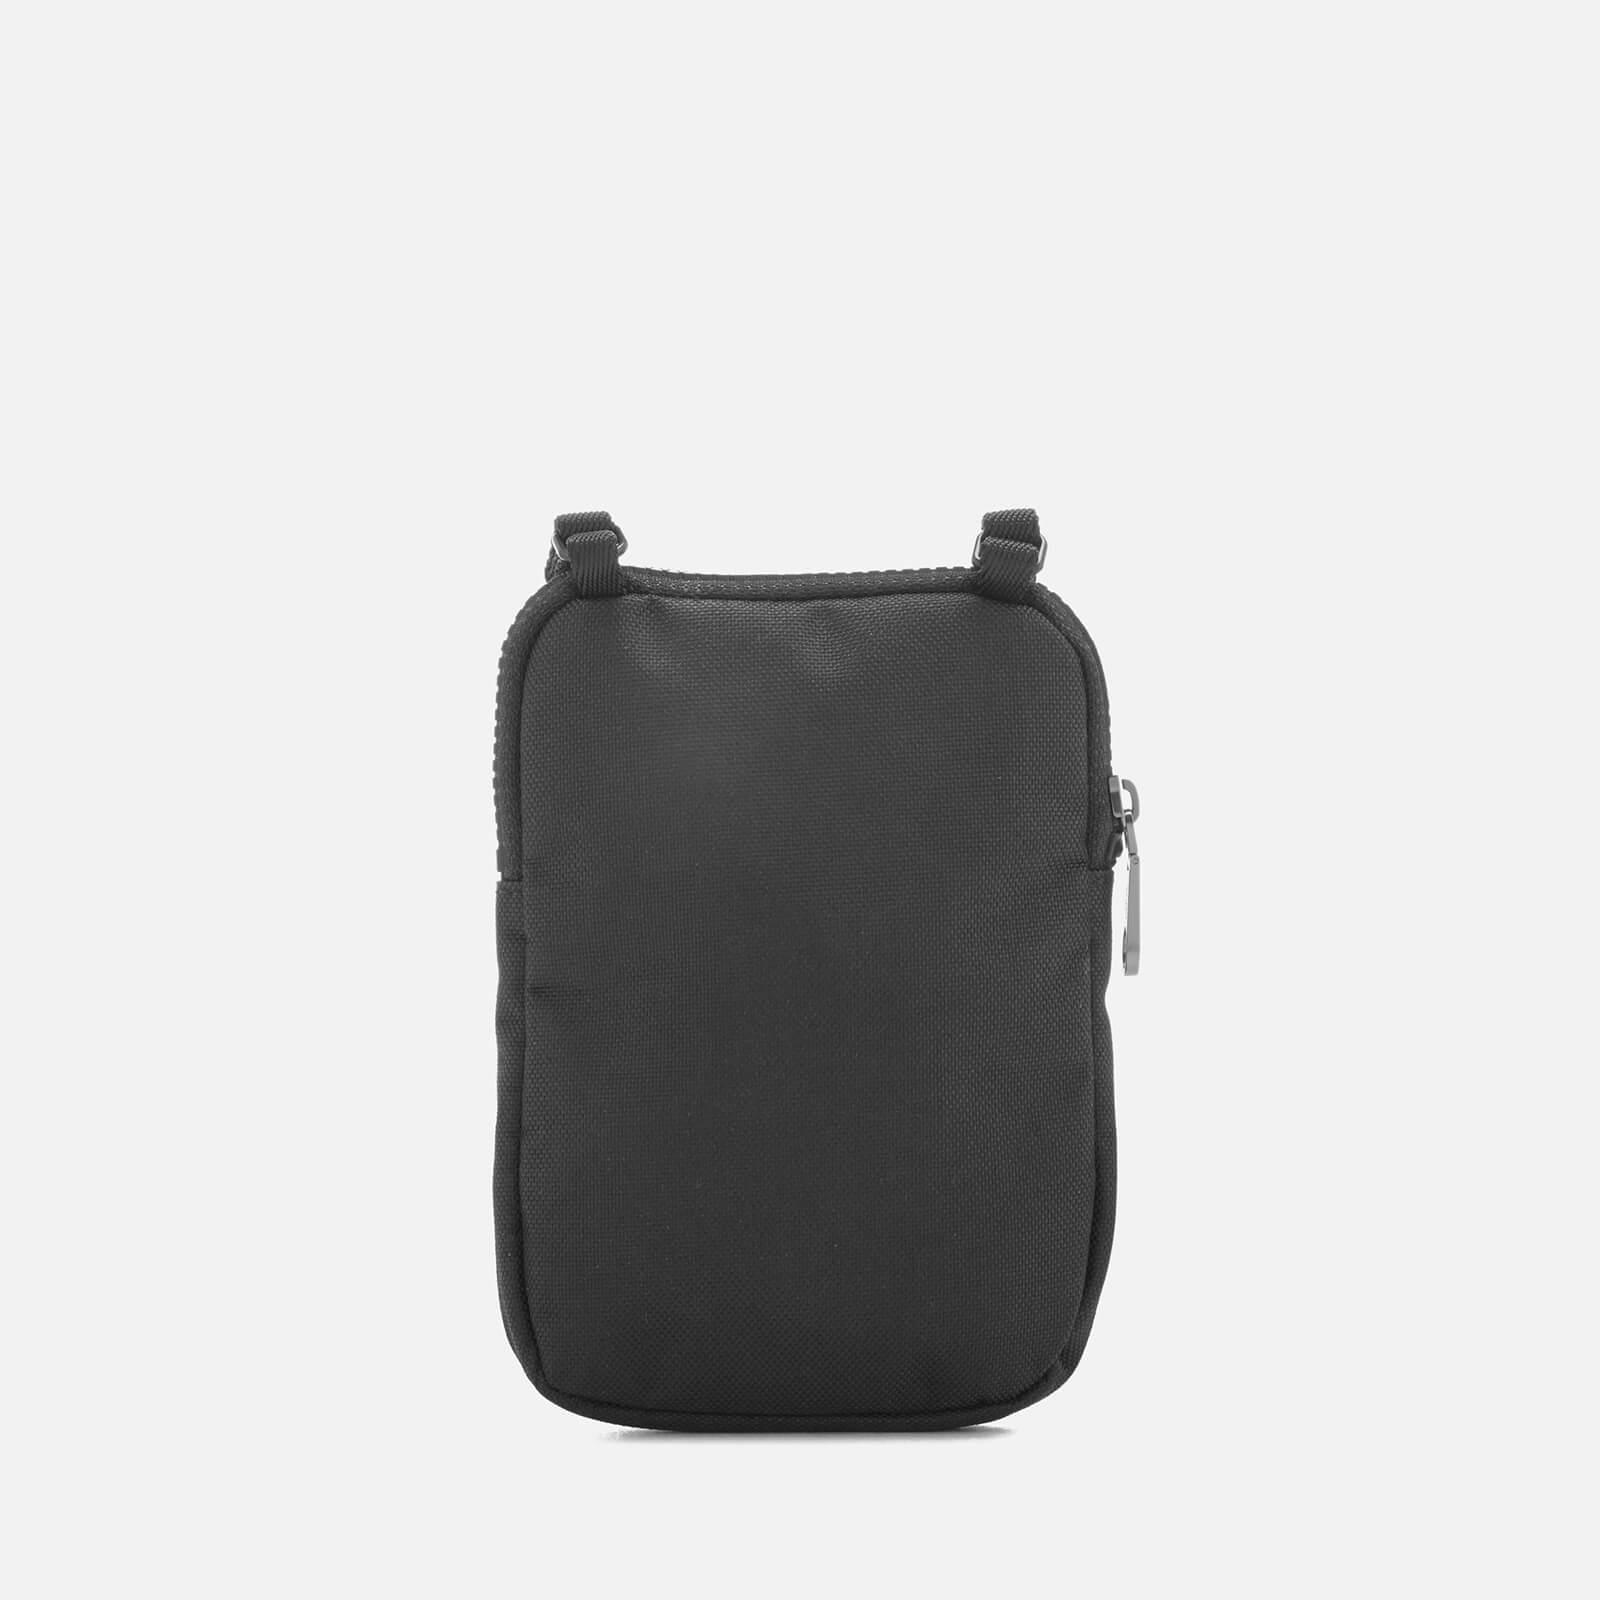 120b080f63 Gallery. Previously sold at: The Hut · Women's Cross Body Bags Women's Calvin  Klein Crossbody